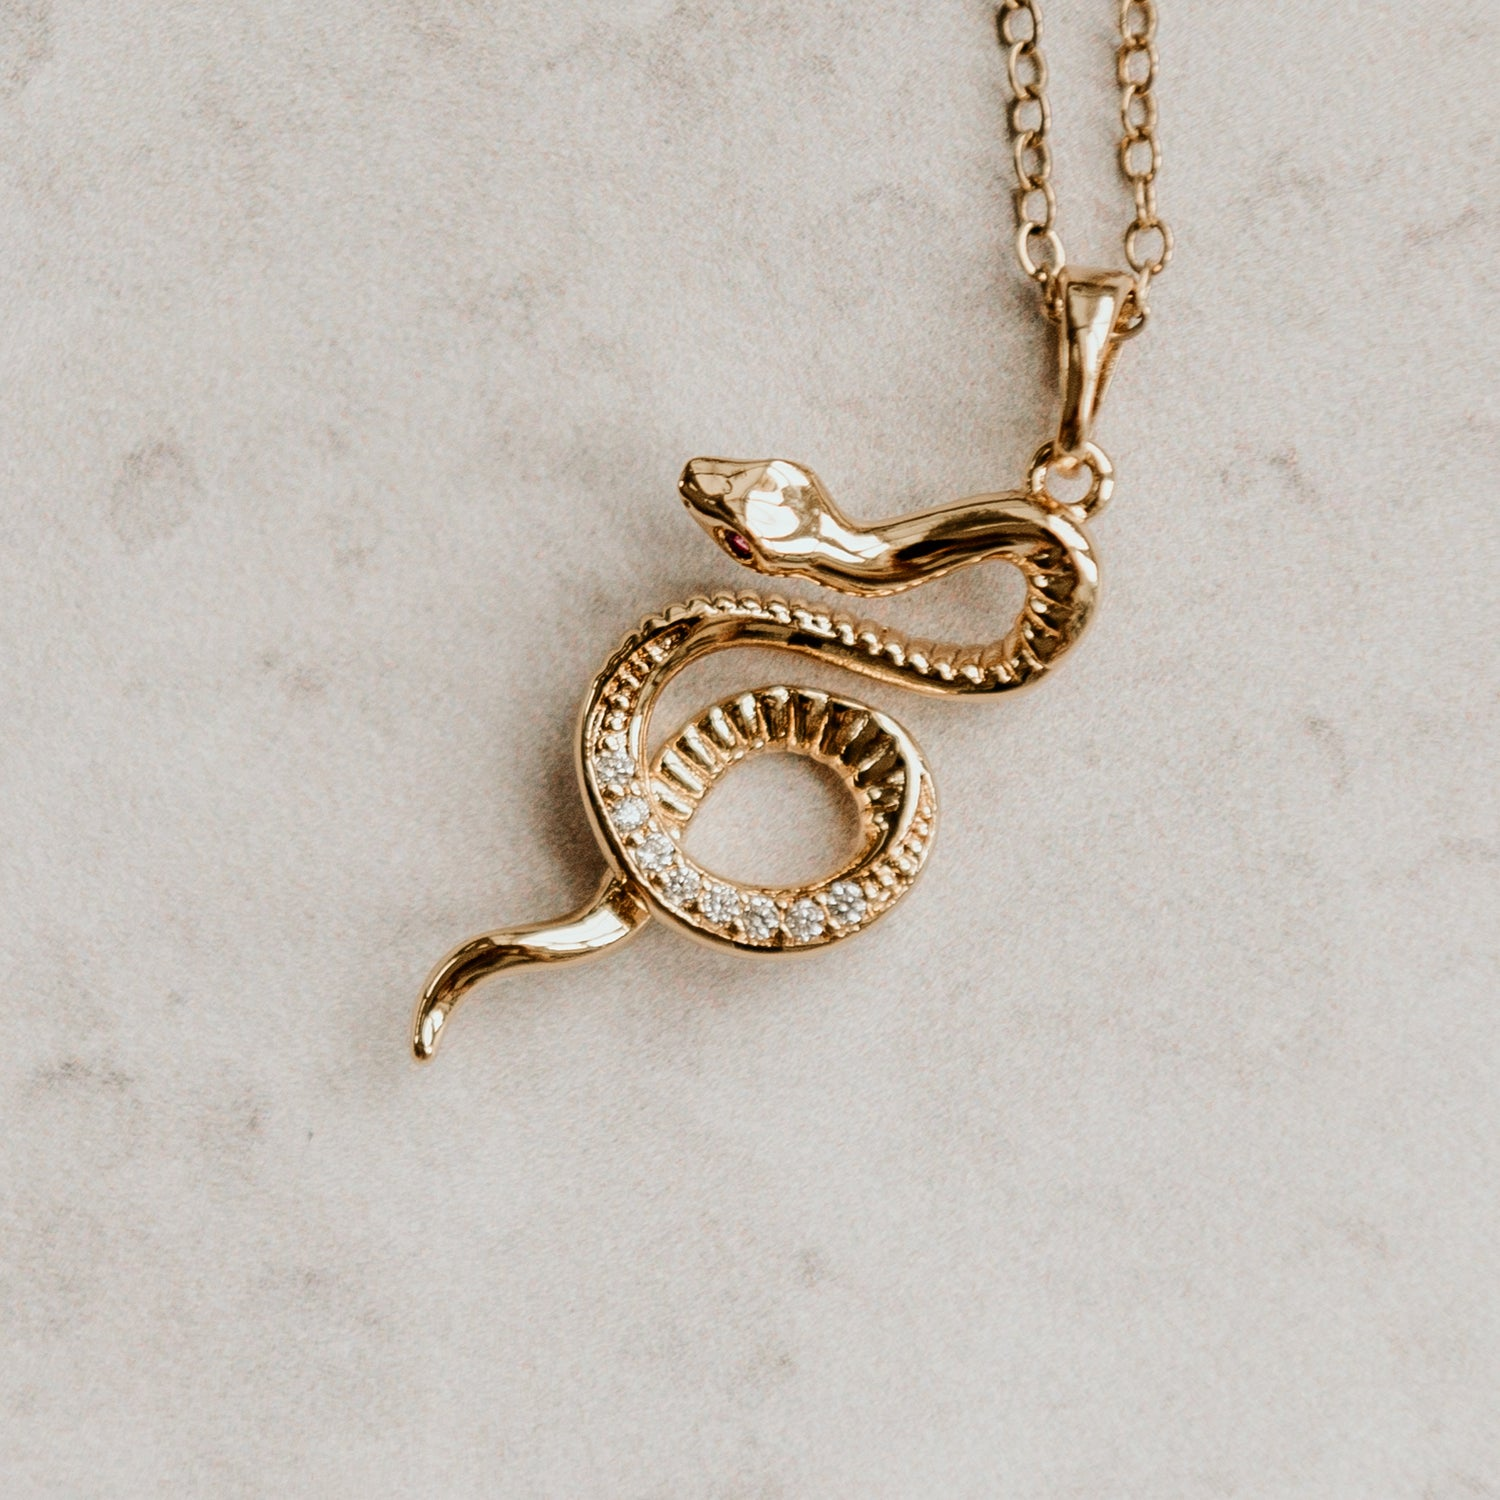 Image of Safira Snake Necklace